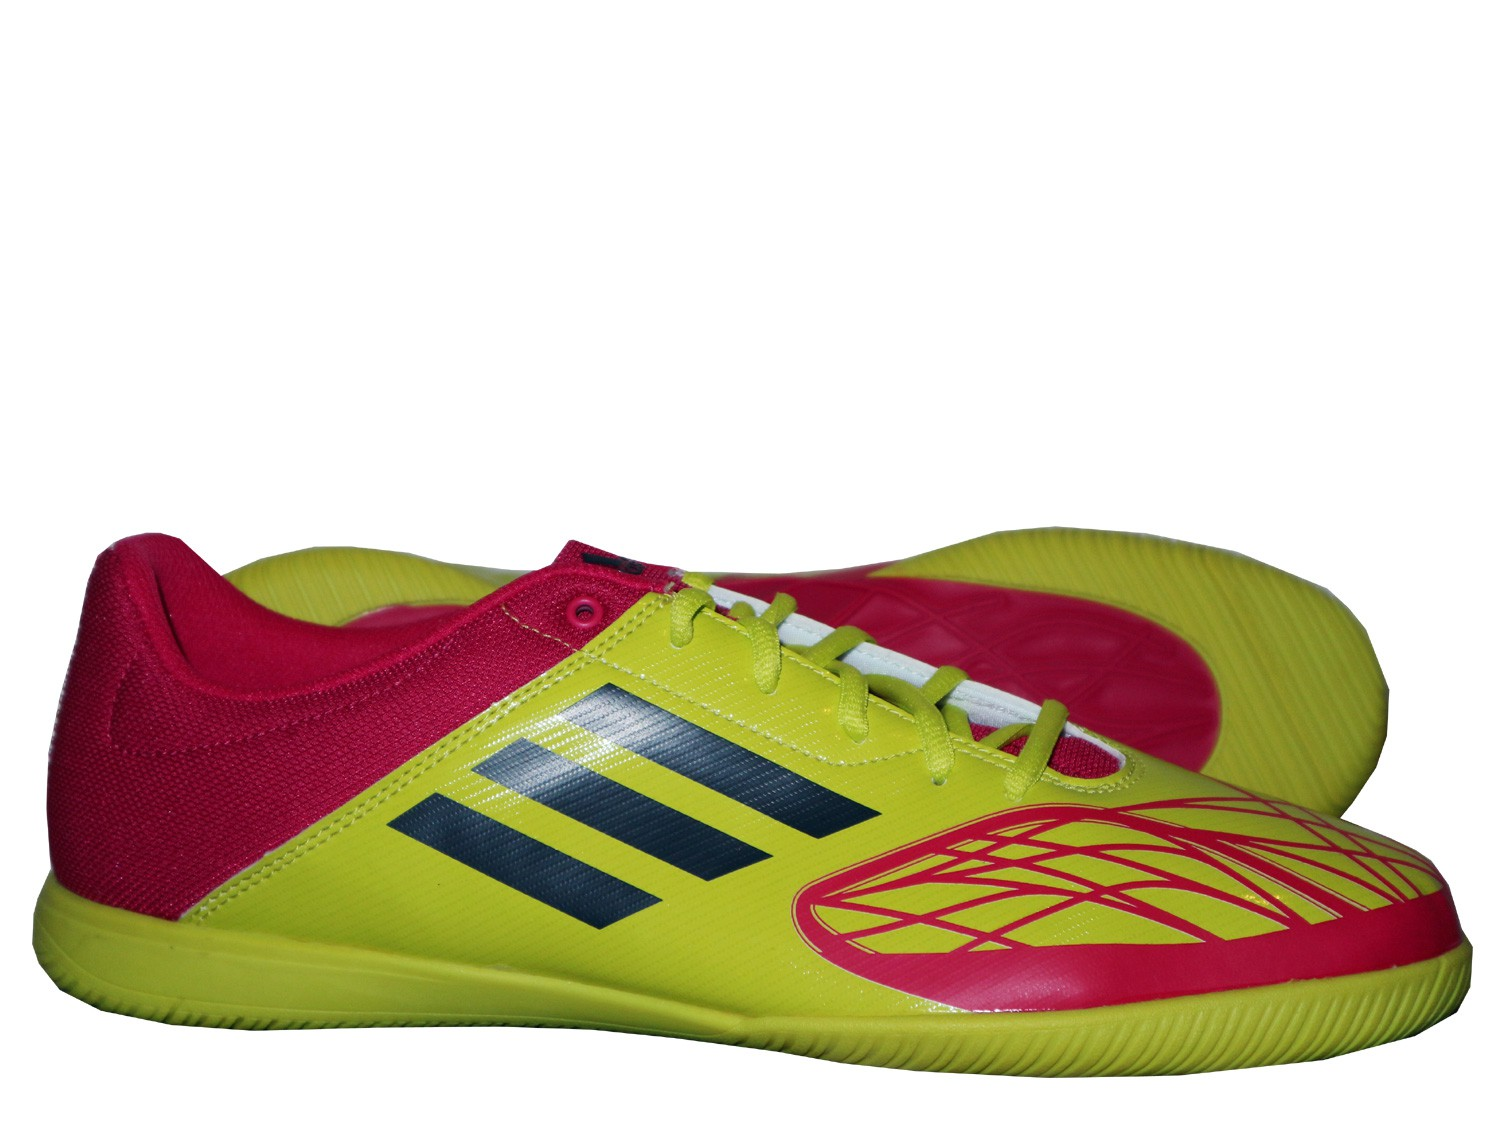 adidas Freefootball Speedkick